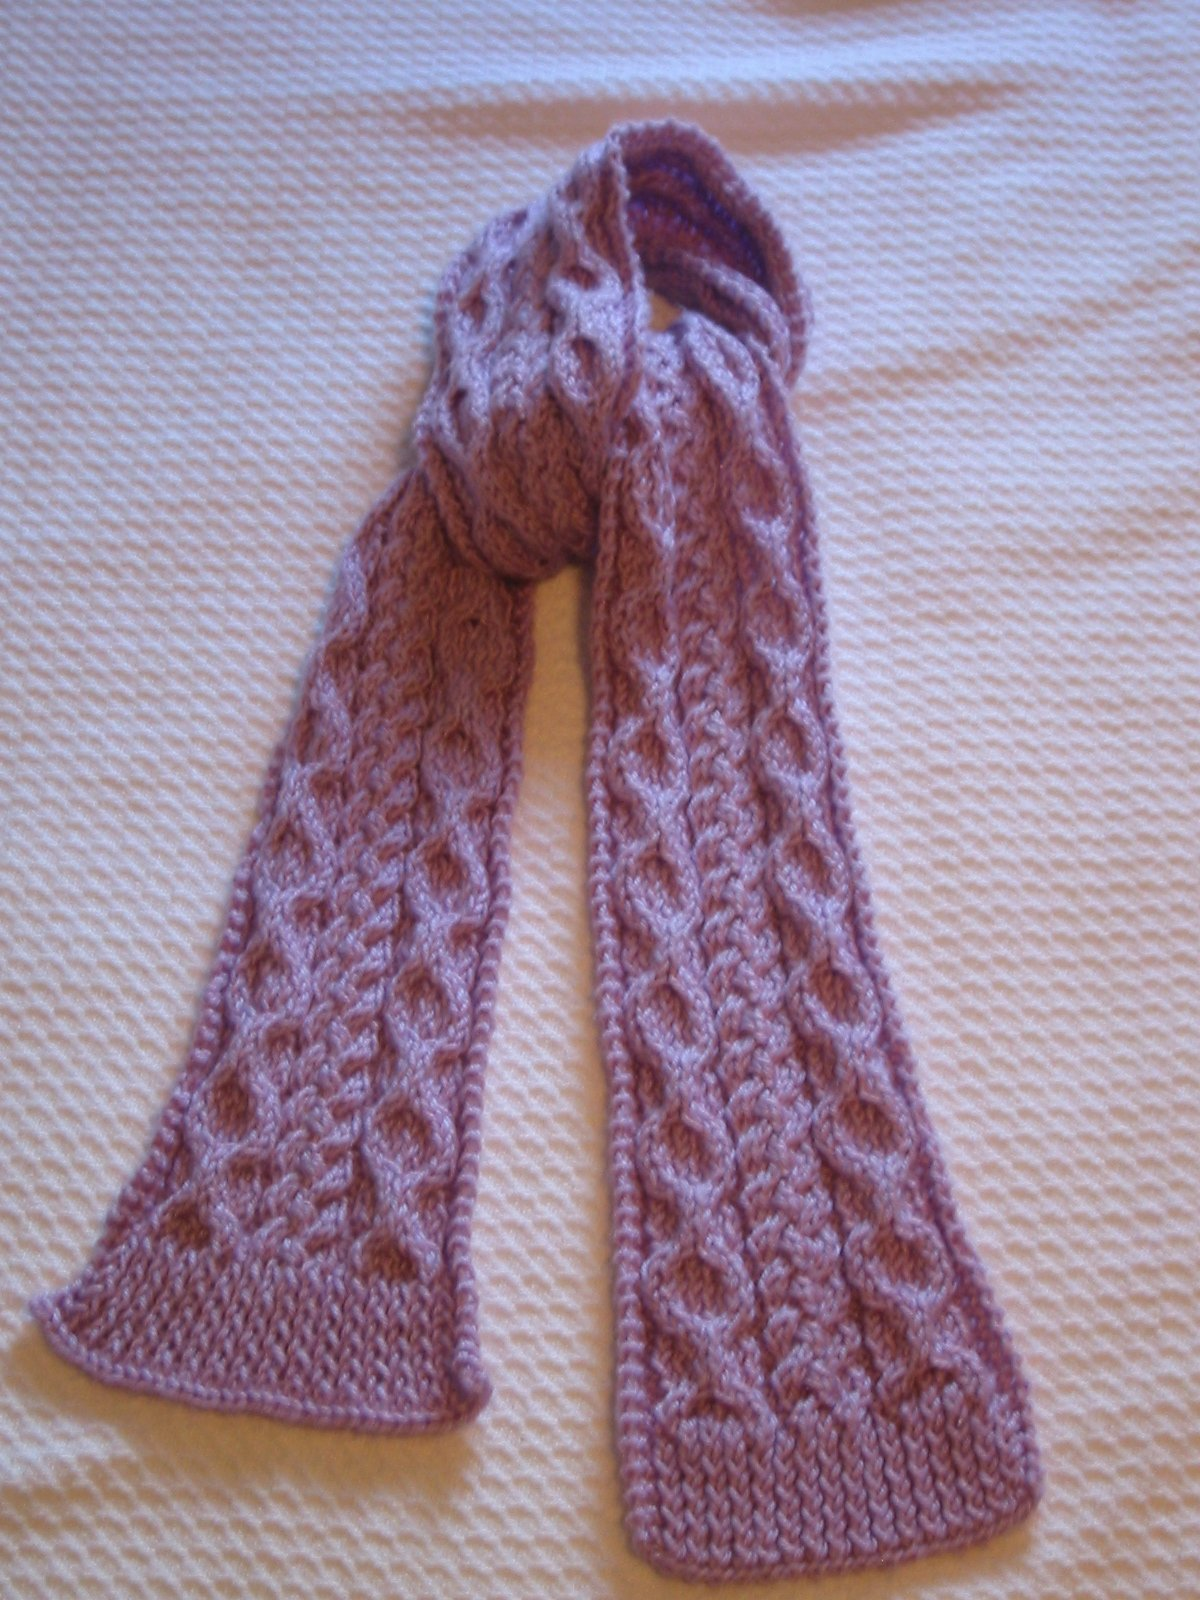 Knitting A Scarf Pattern : Cable knit scarf pattern a knitting